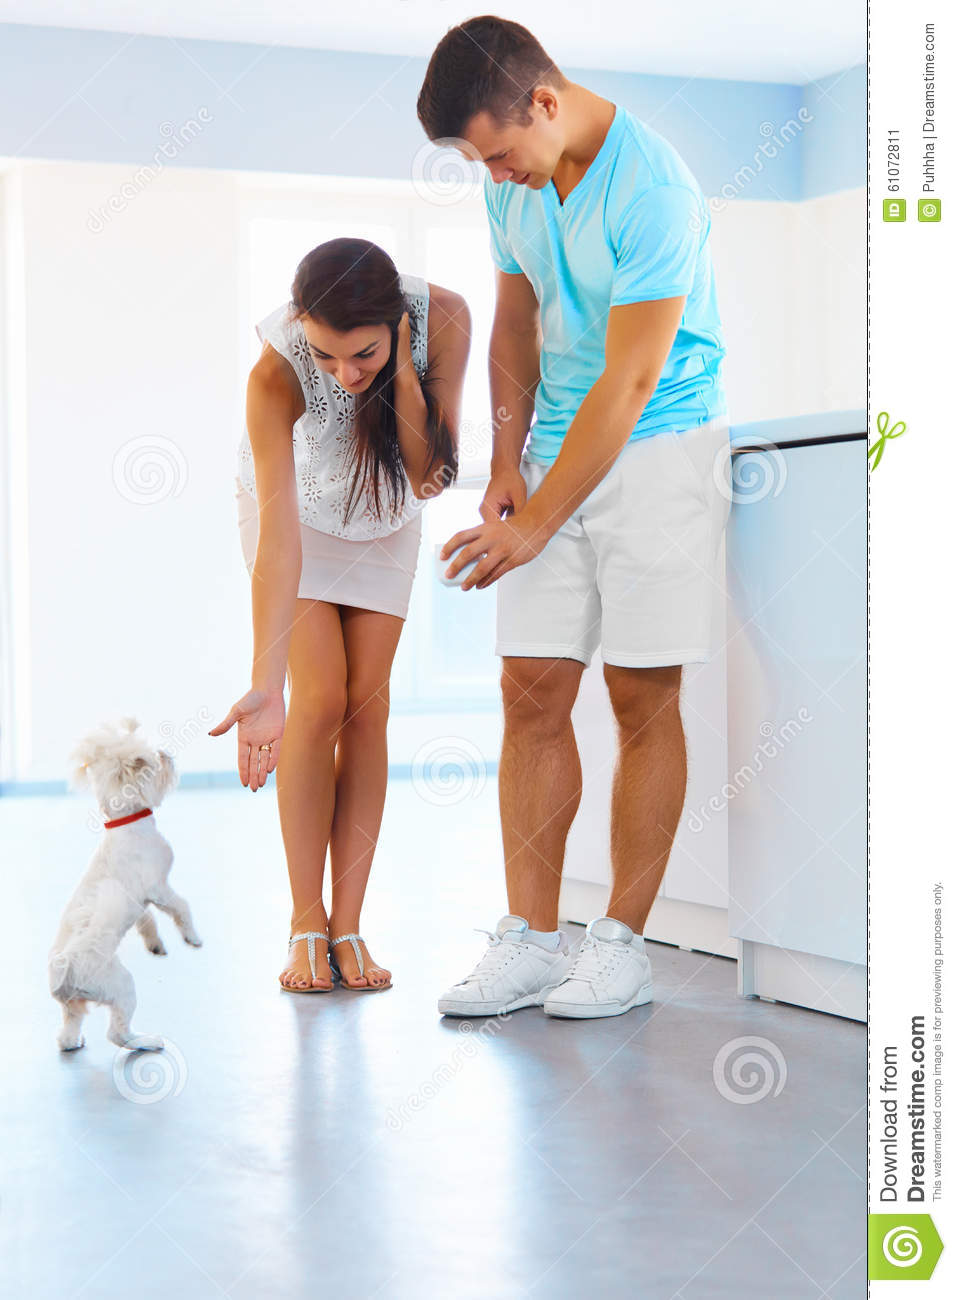 Puppy tricks. Happy couple with a dog in the kitchen.